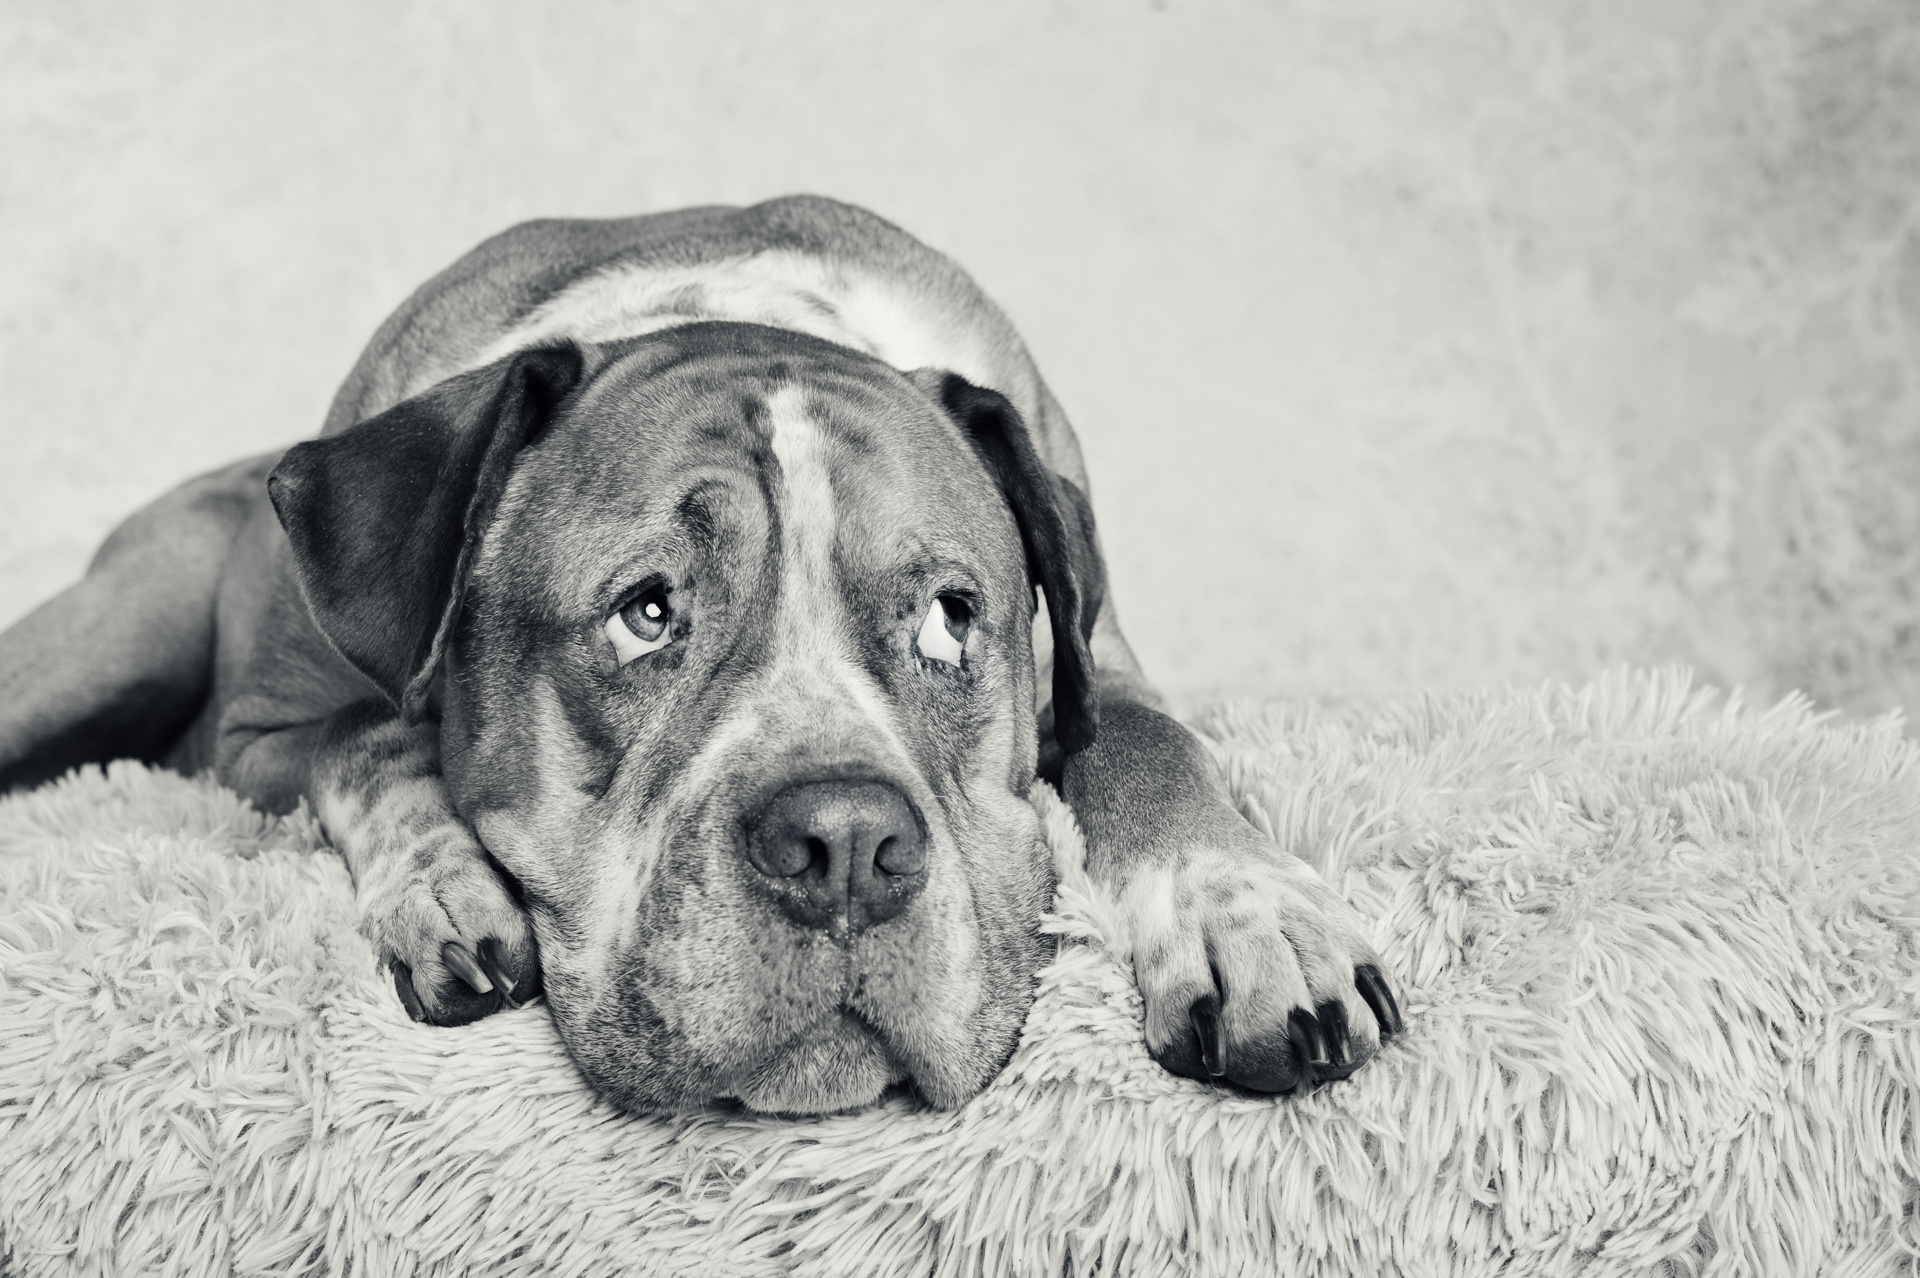 The-Artful-Dog-Studio-Dog-Photographer-4-1